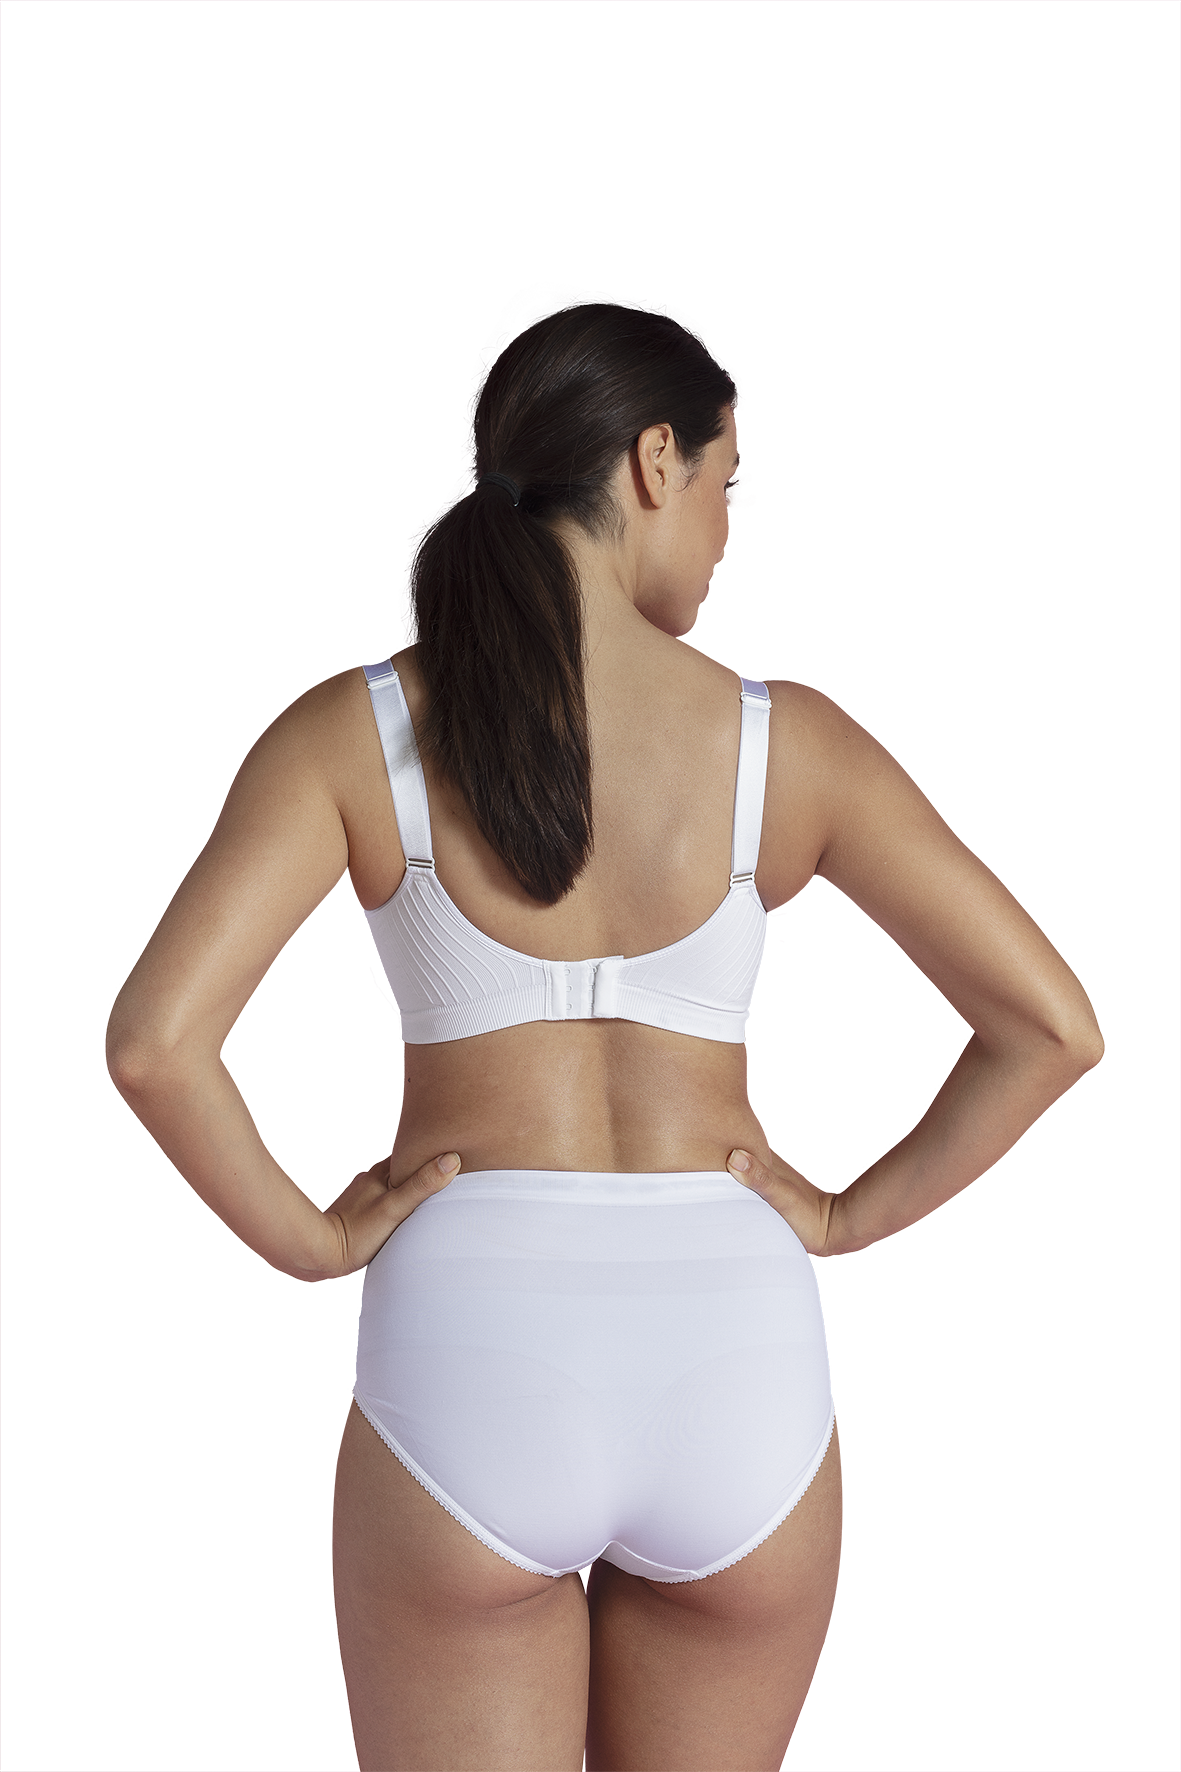 4a0323c196294 ... Carriwell Seamless GelWire Nursing Bra - Carriwell